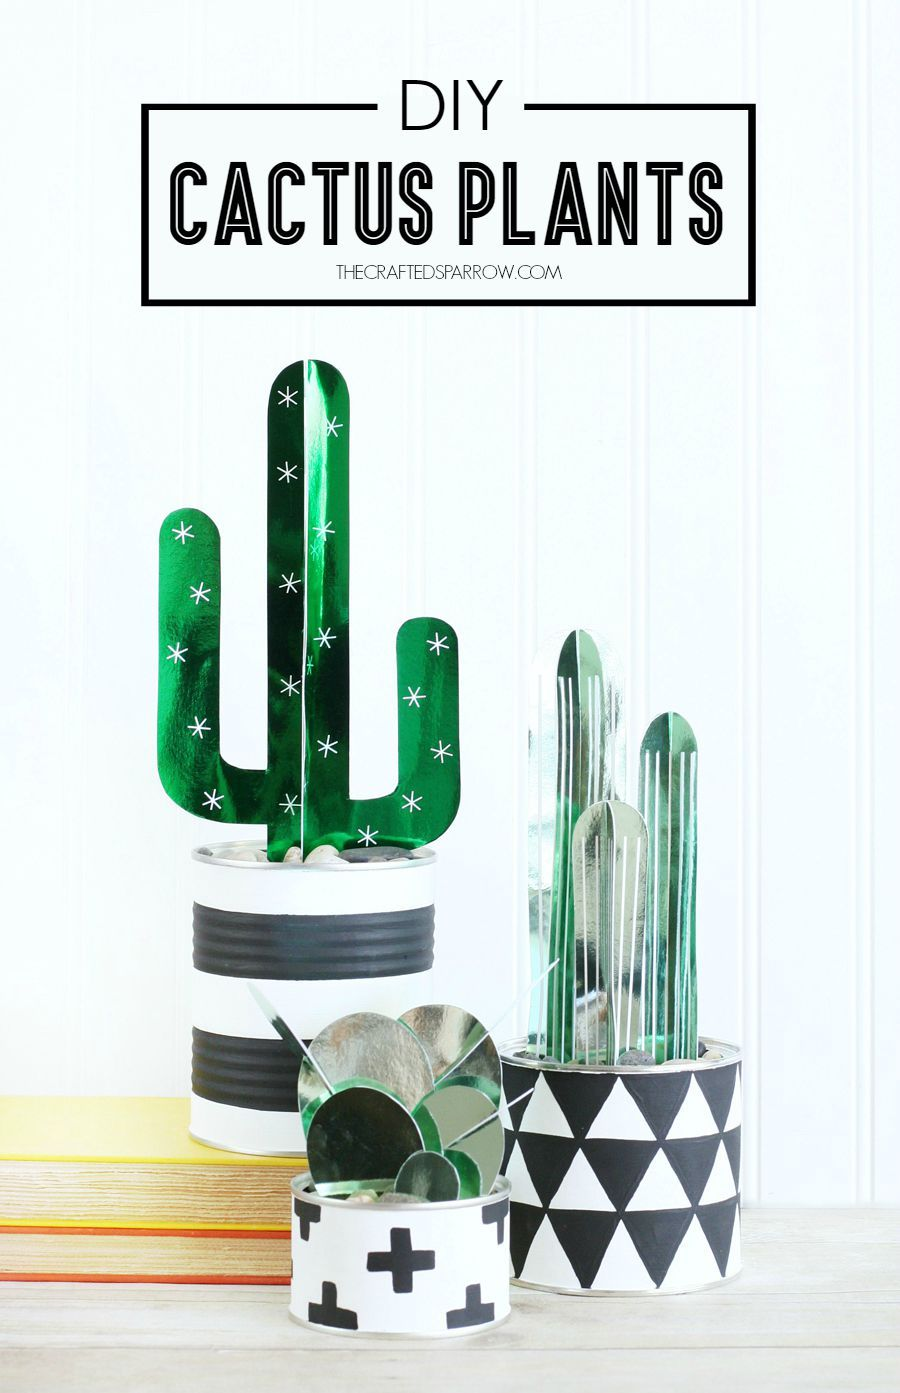 DIY Cactus Plants (Includes free printable templates) - thecraftedsparrow.com #HSMinc [ad]